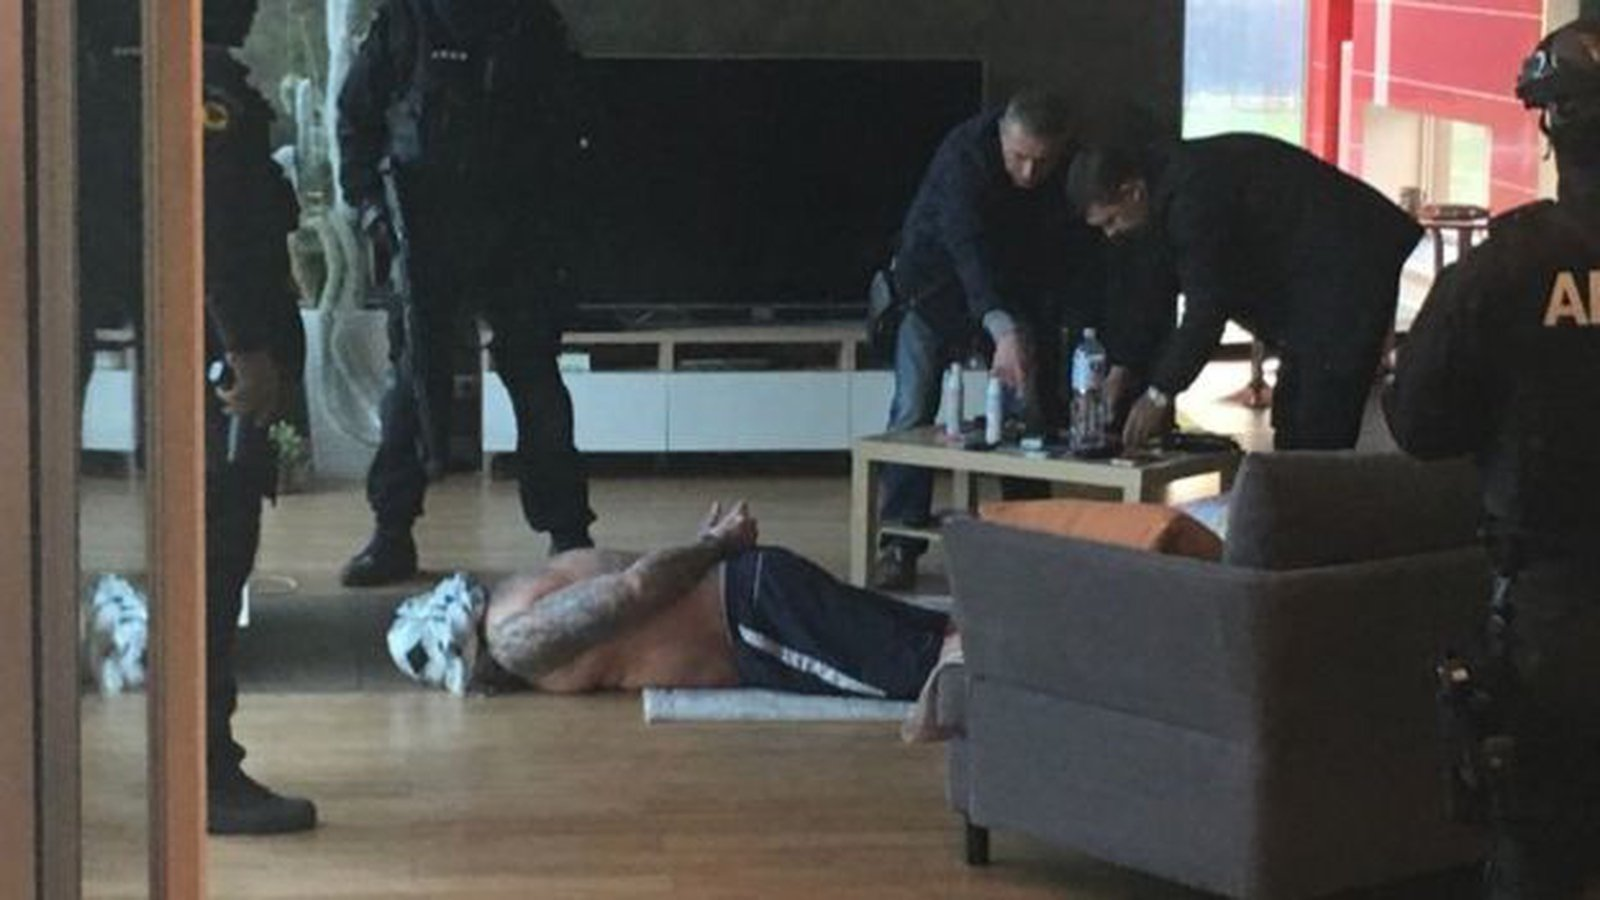 Image - James Mulvey was arrested by Special Forces in Lithuania in 2014